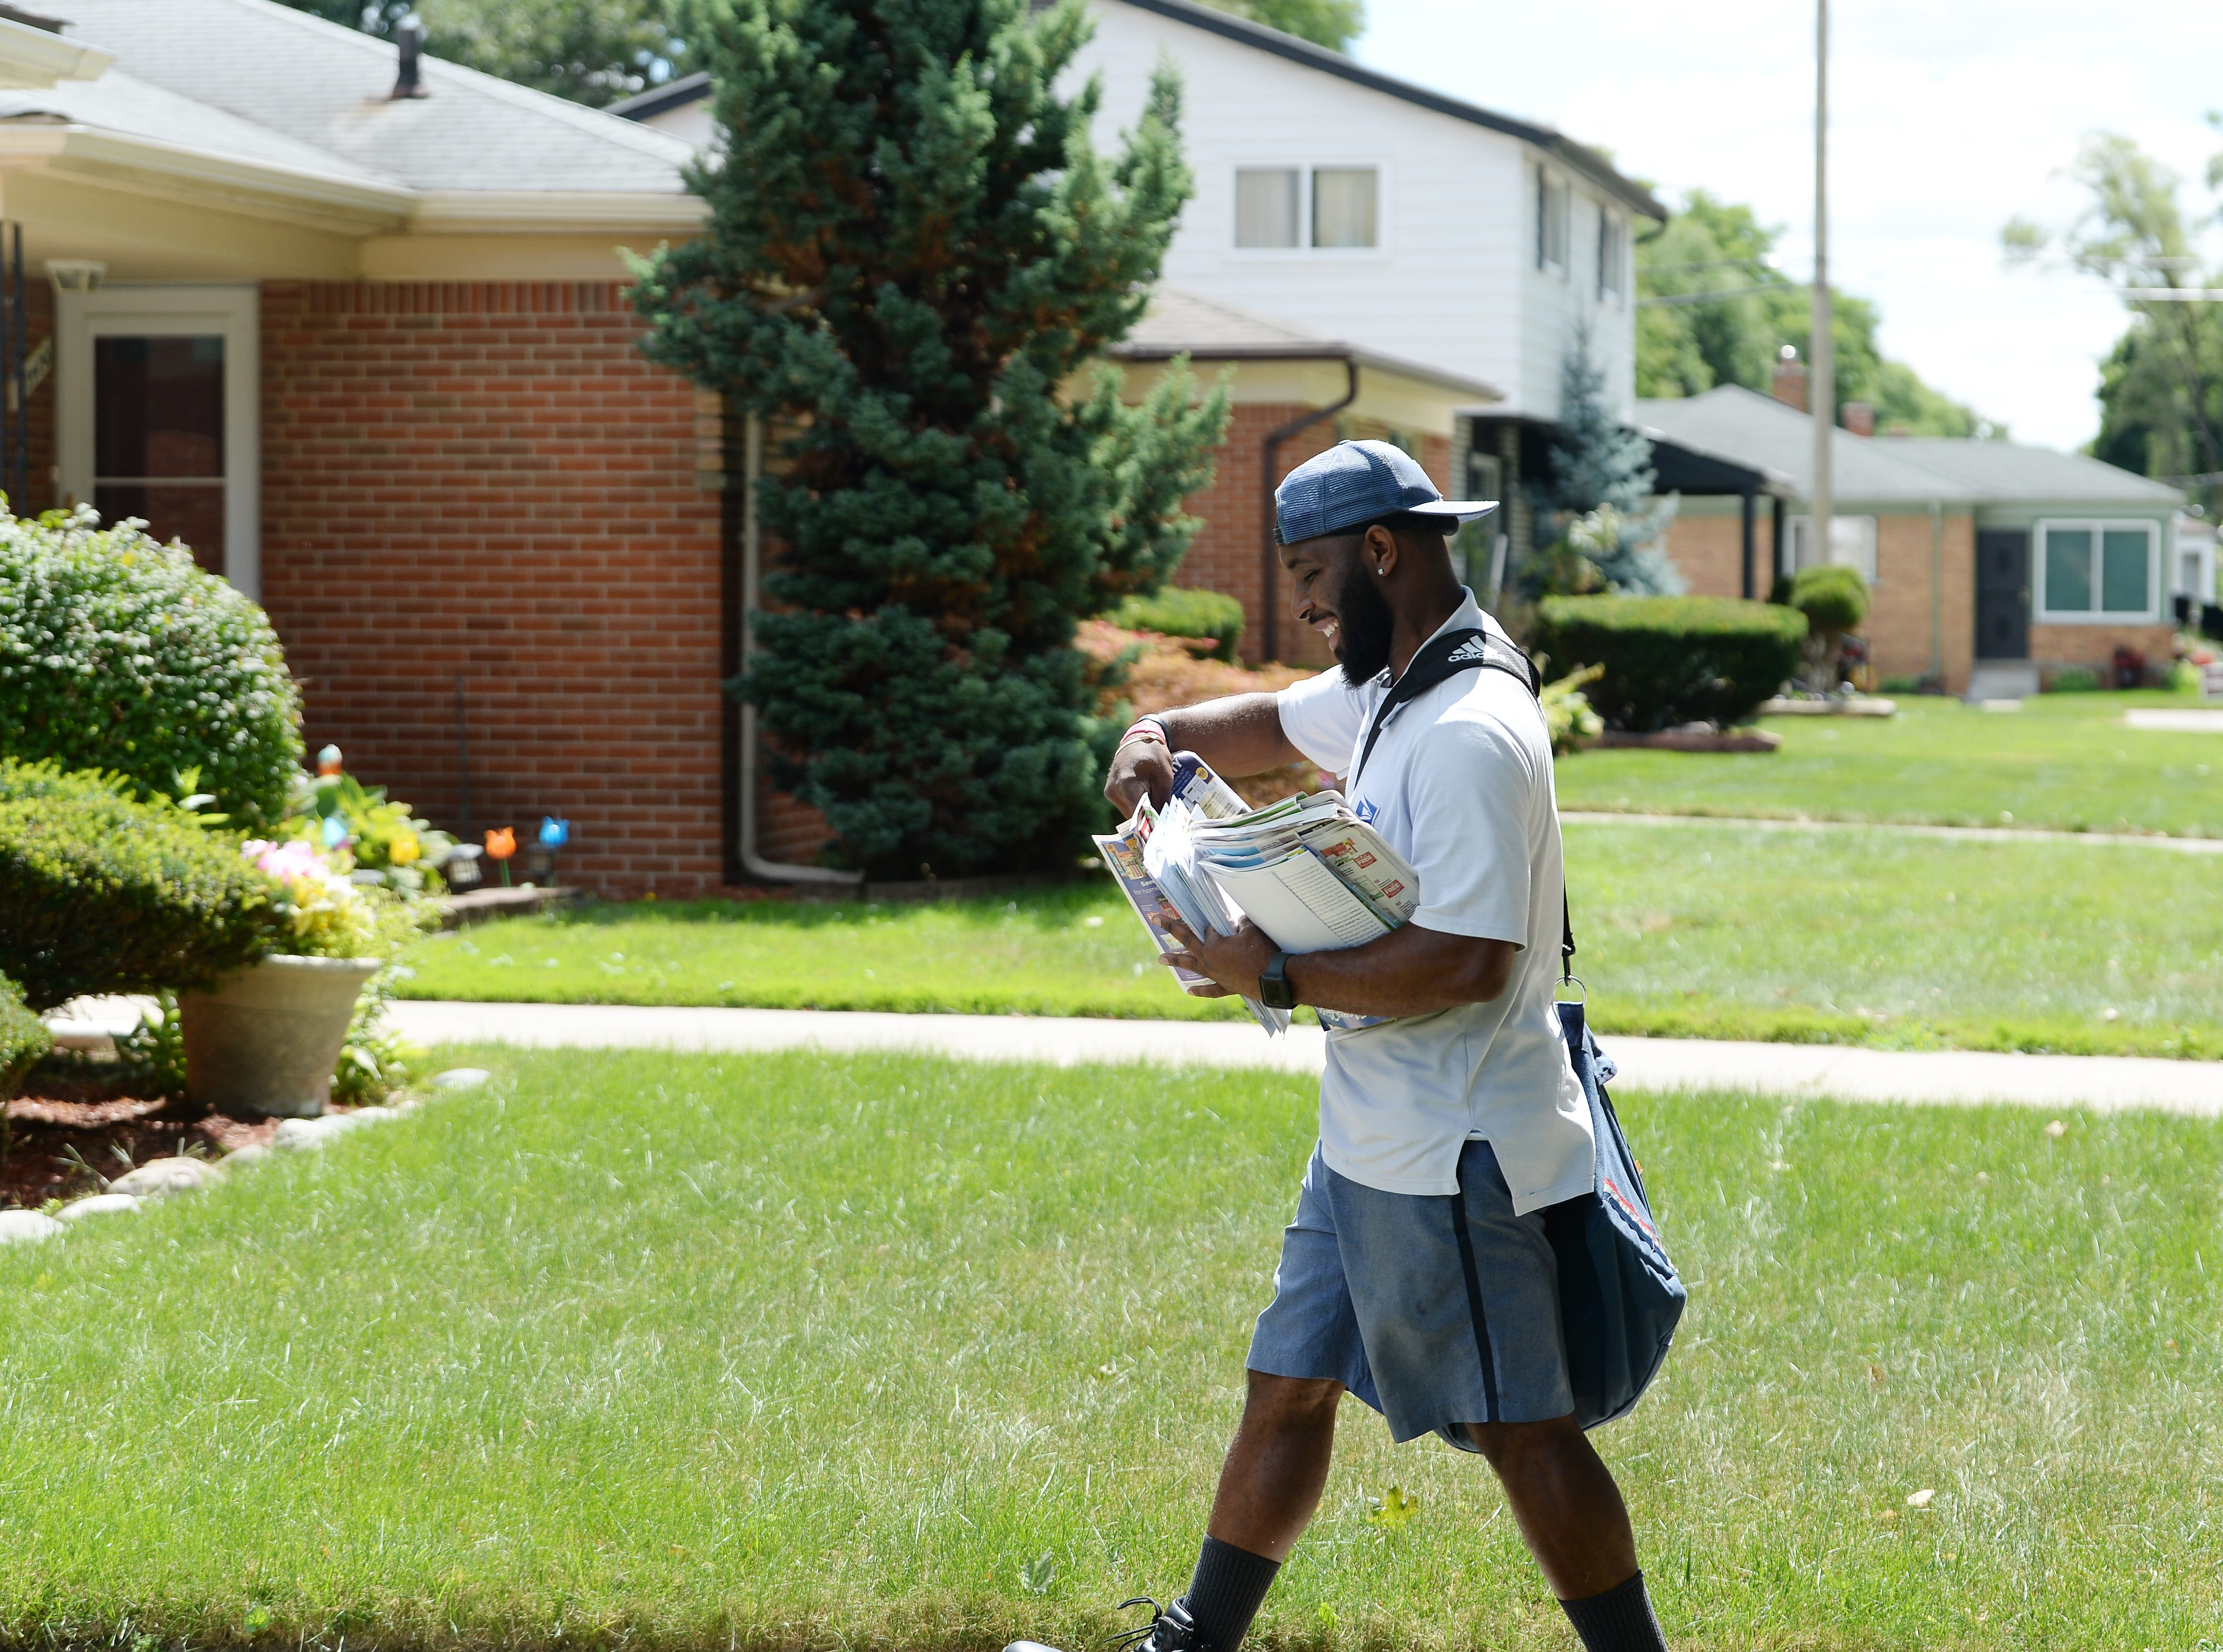 Detroit ranked in top 10 cities for dog attacks on postal carriers